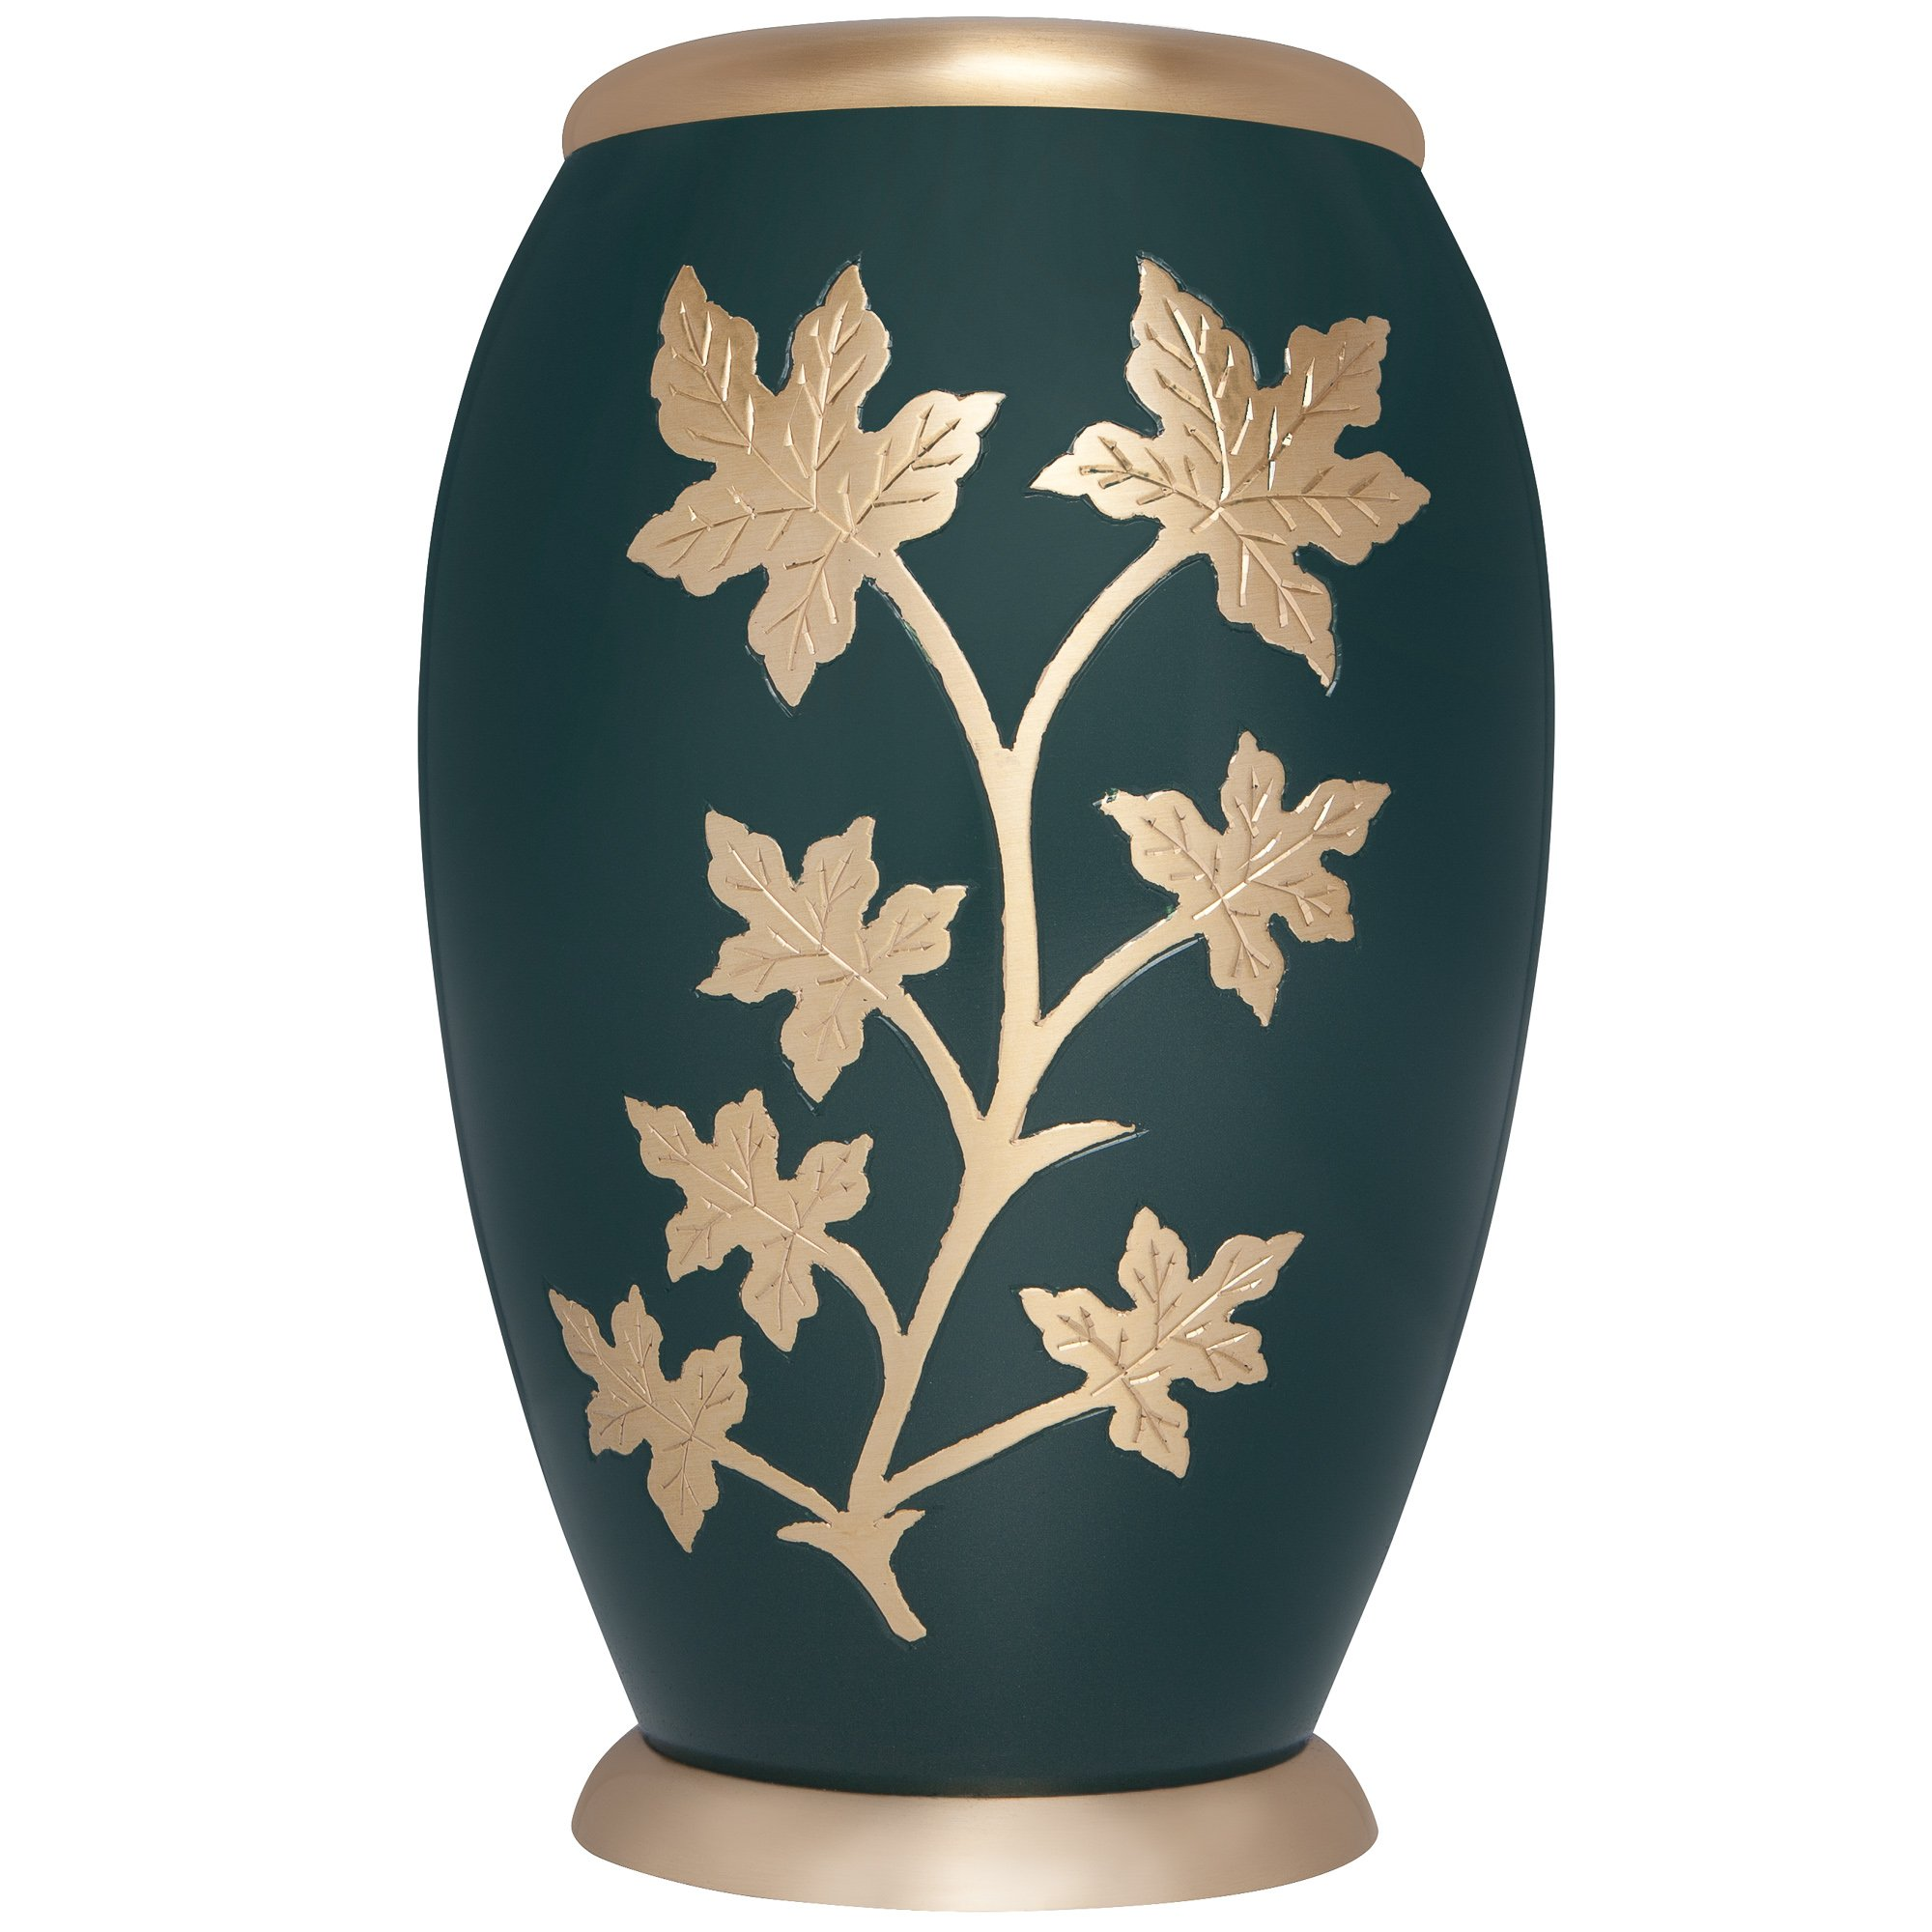 Liliane Memorials Green Funeral Cremation Urn with a Maple Branch and Gold Leaves Palermo Model in Brass for Human Ashes; Suitable for Cemetery Burial; Fits Remains of Adults up to 200 lbs, Large, by Liliane Memorials